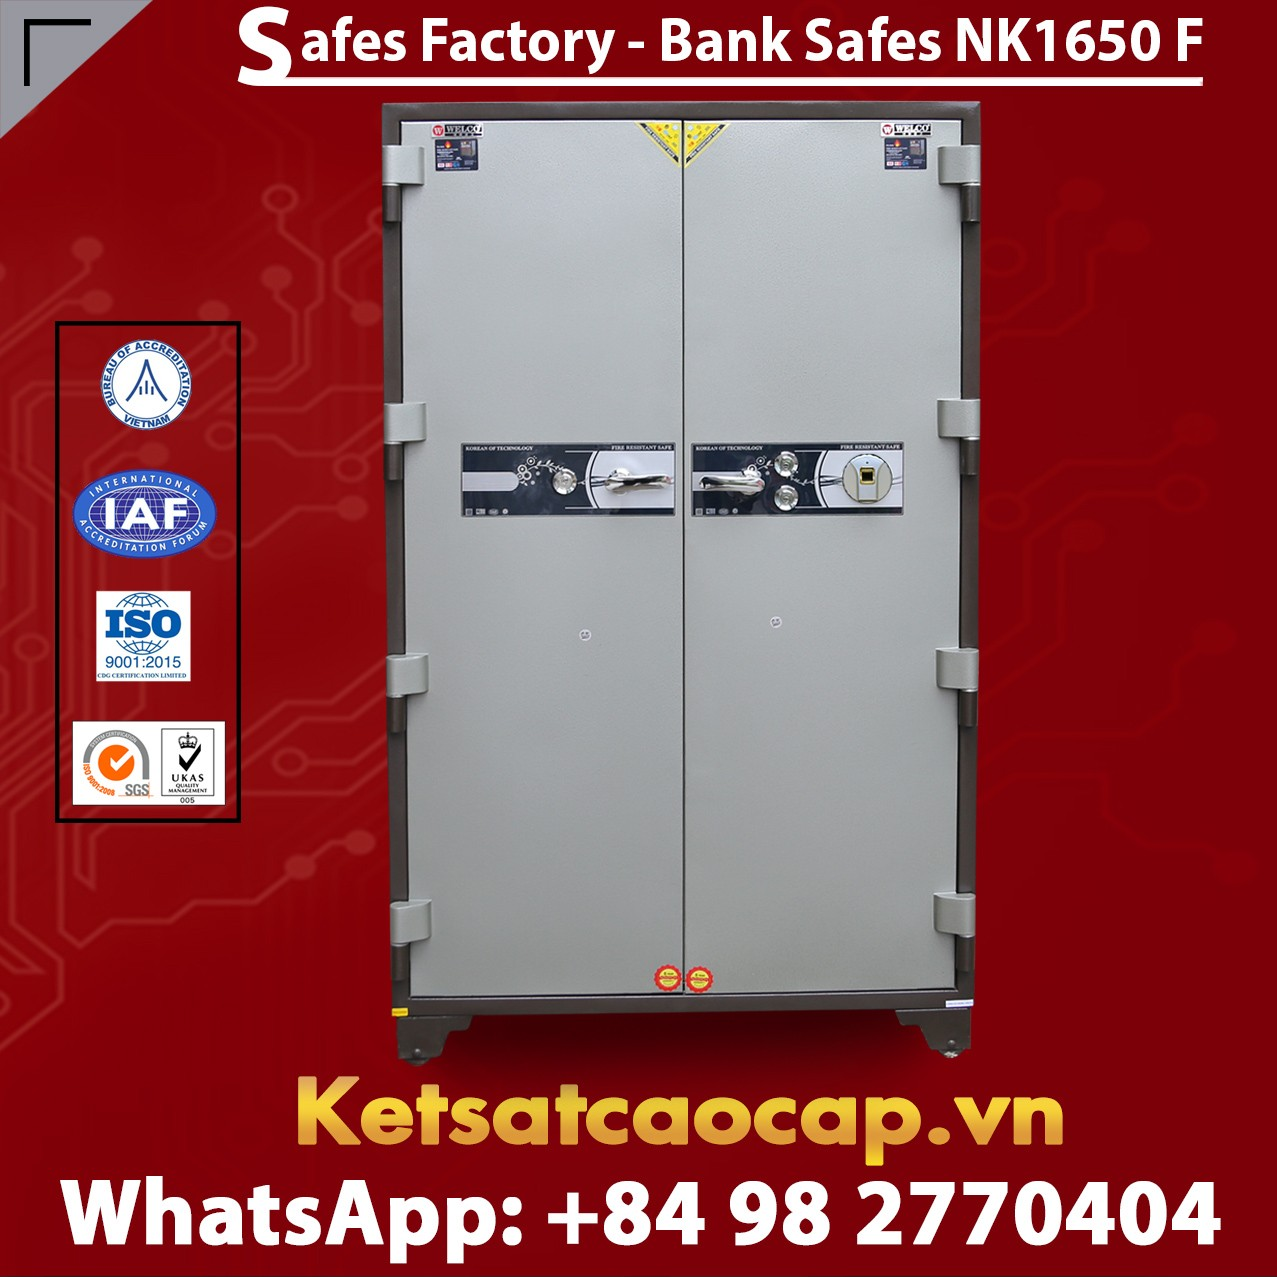 Bank Safes Deposit Box made in Viet Nam